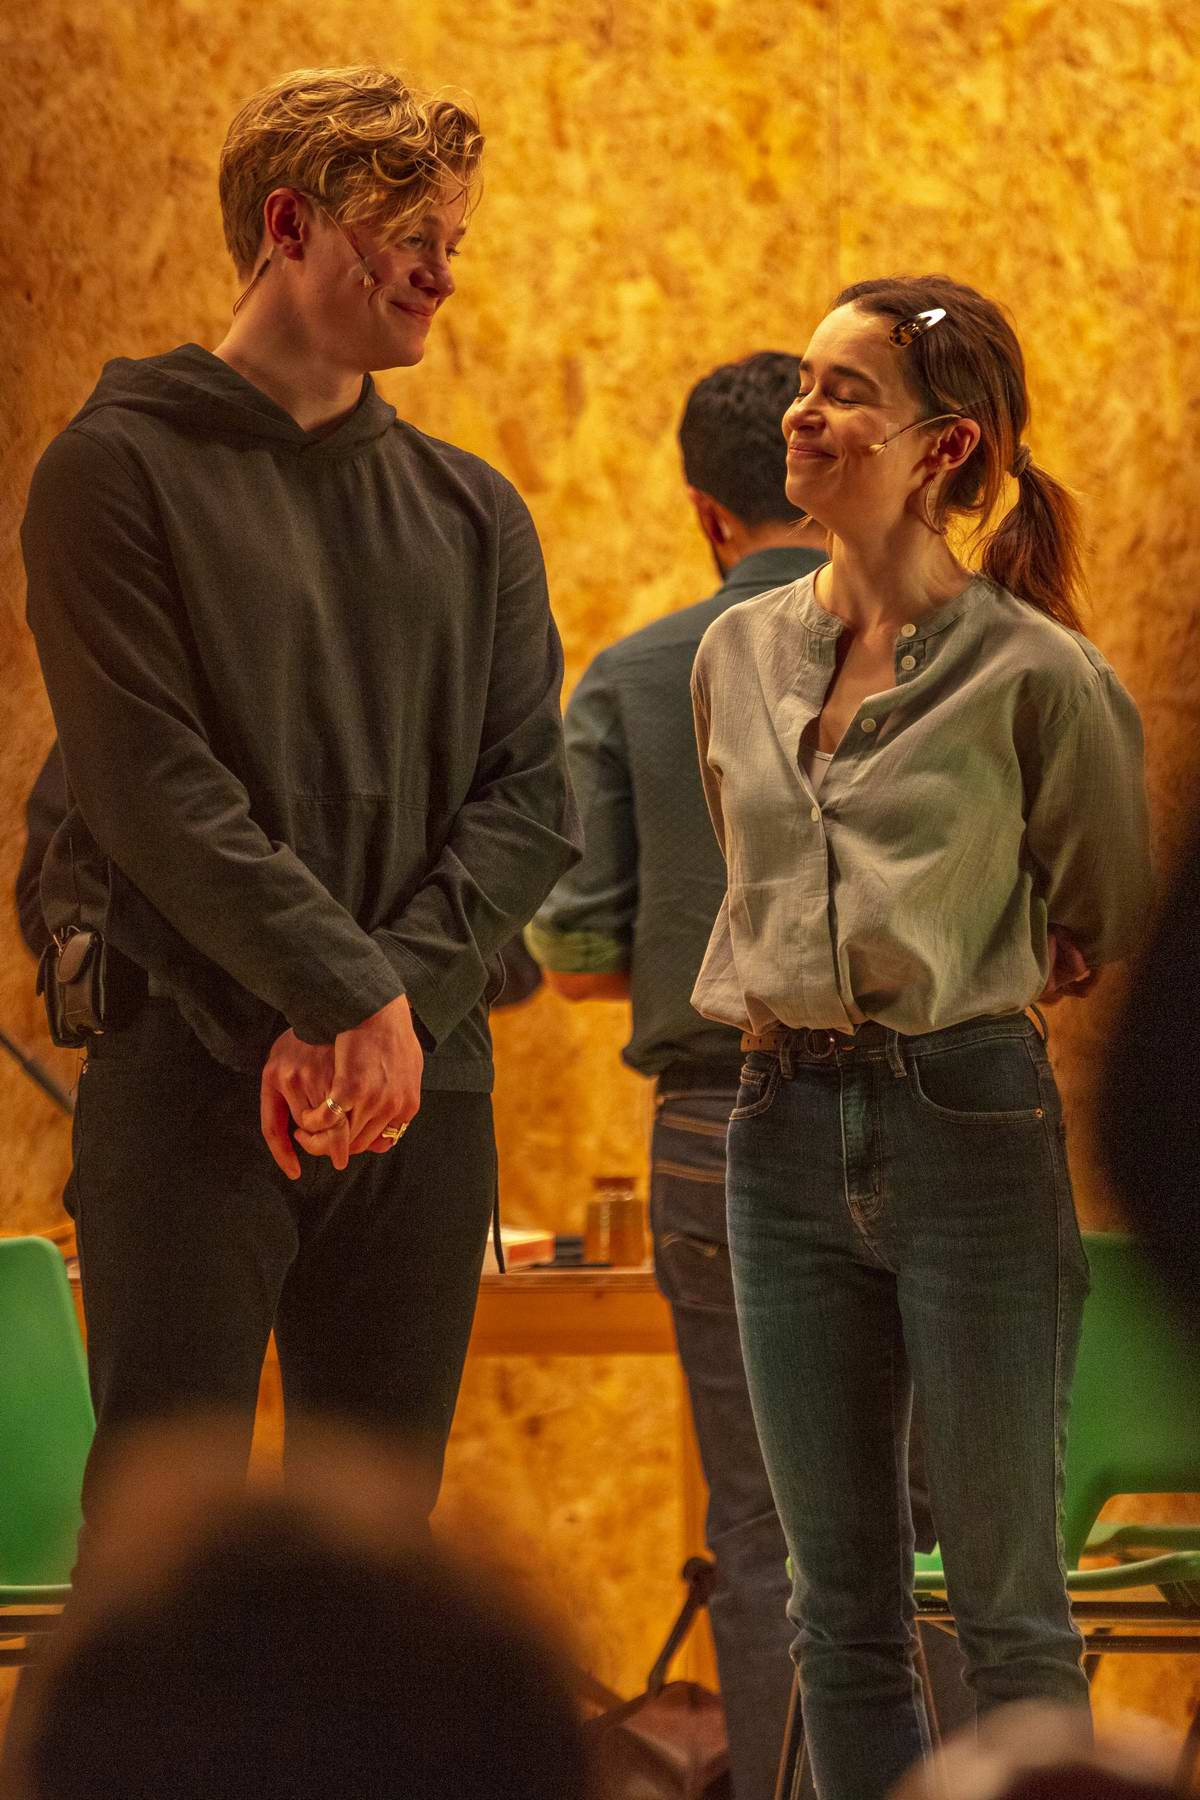 Emilia Clarke on stage of her new West End theatre play 'The Seagull' in London, UK